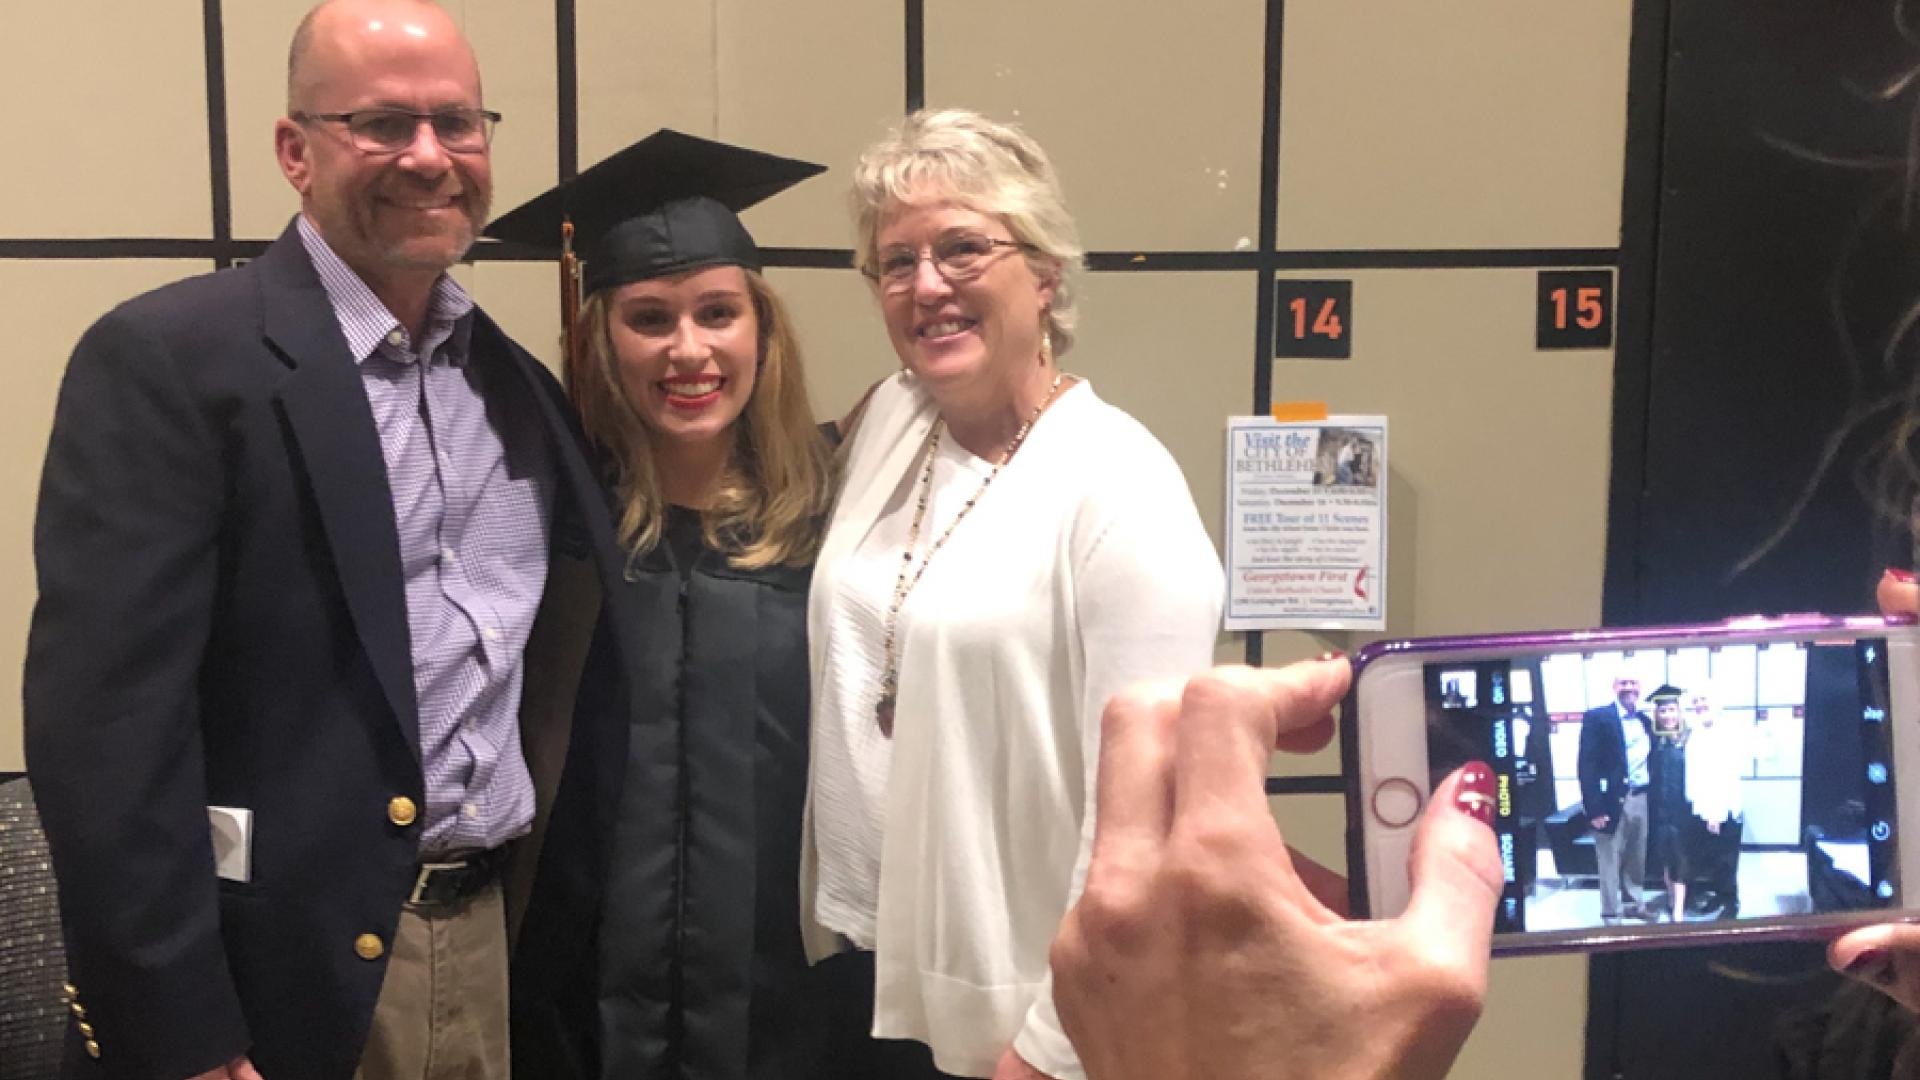 Graduate and her family pose for picture